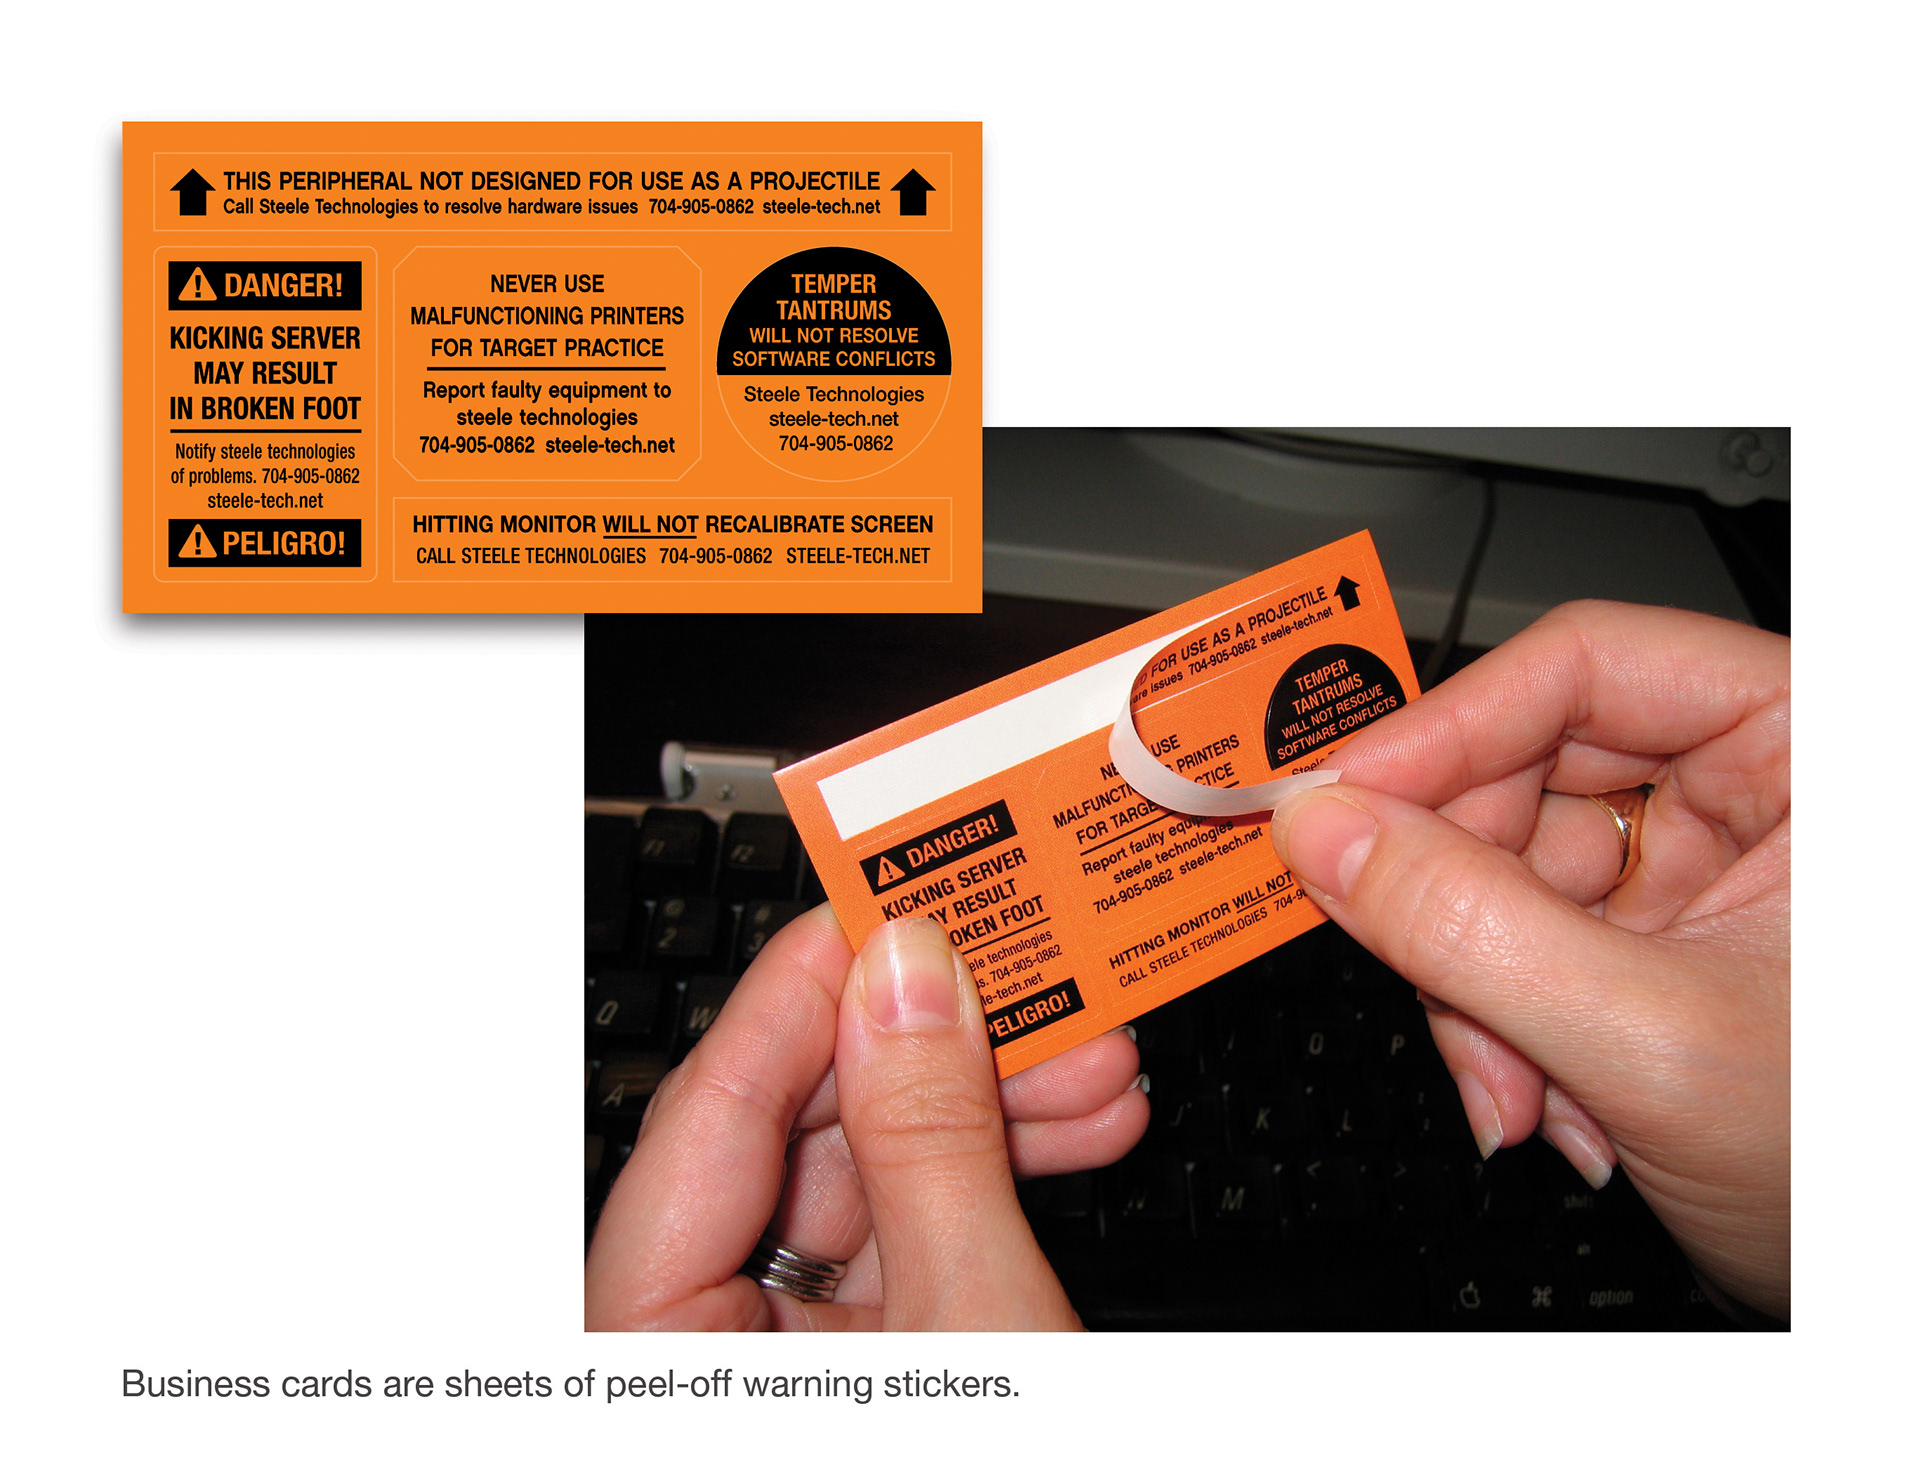 Douglas pedersen business cards for steele technologies were sheets of peel off warning stickers for customers to place on their computer equipment magicingreecefo Choice Image